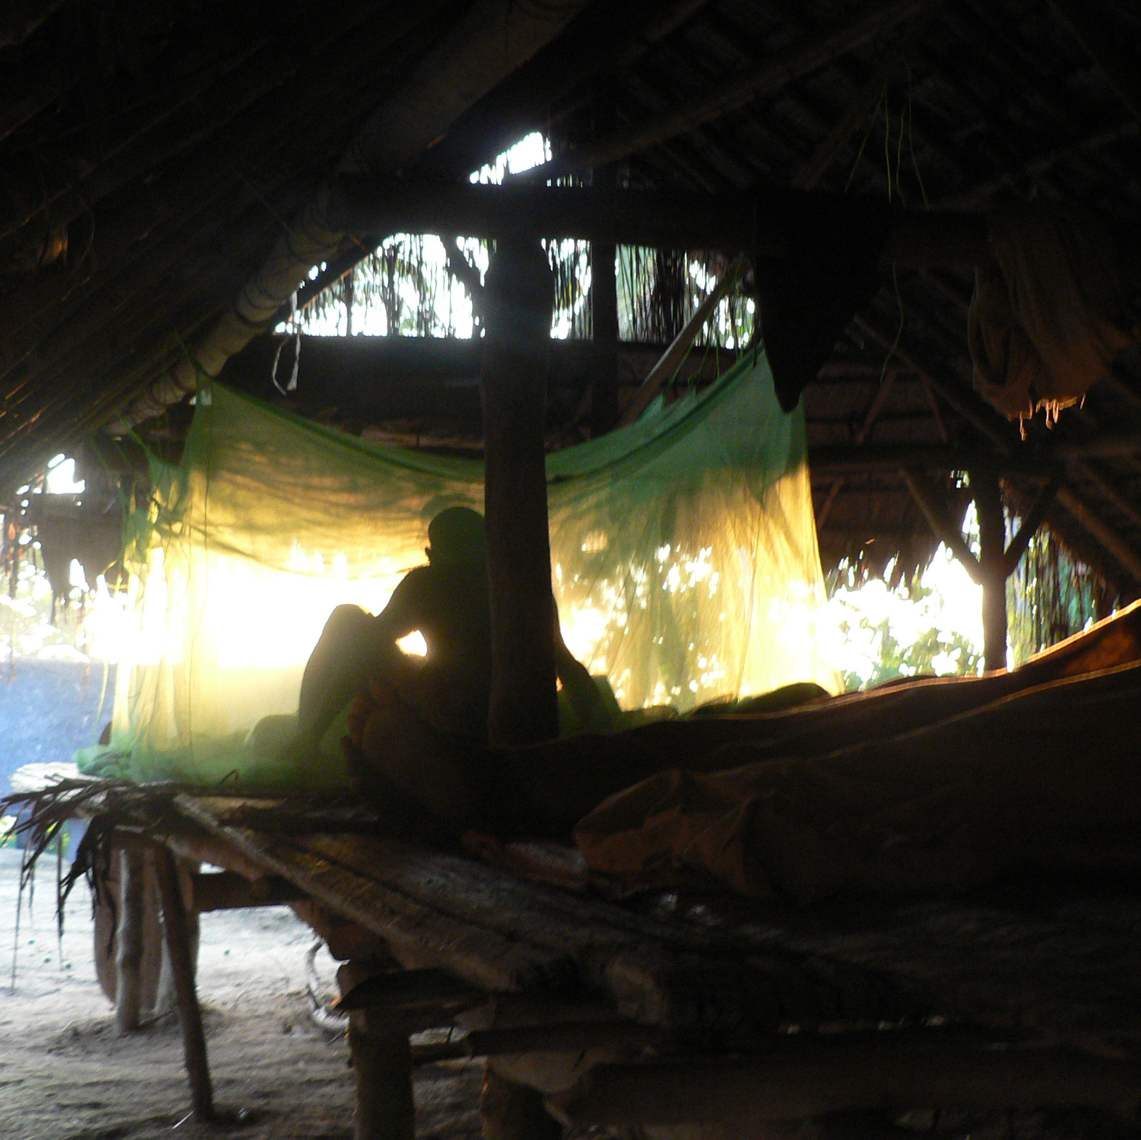 Mosquito Net Strung Up, Field Collecting New Guinea Art